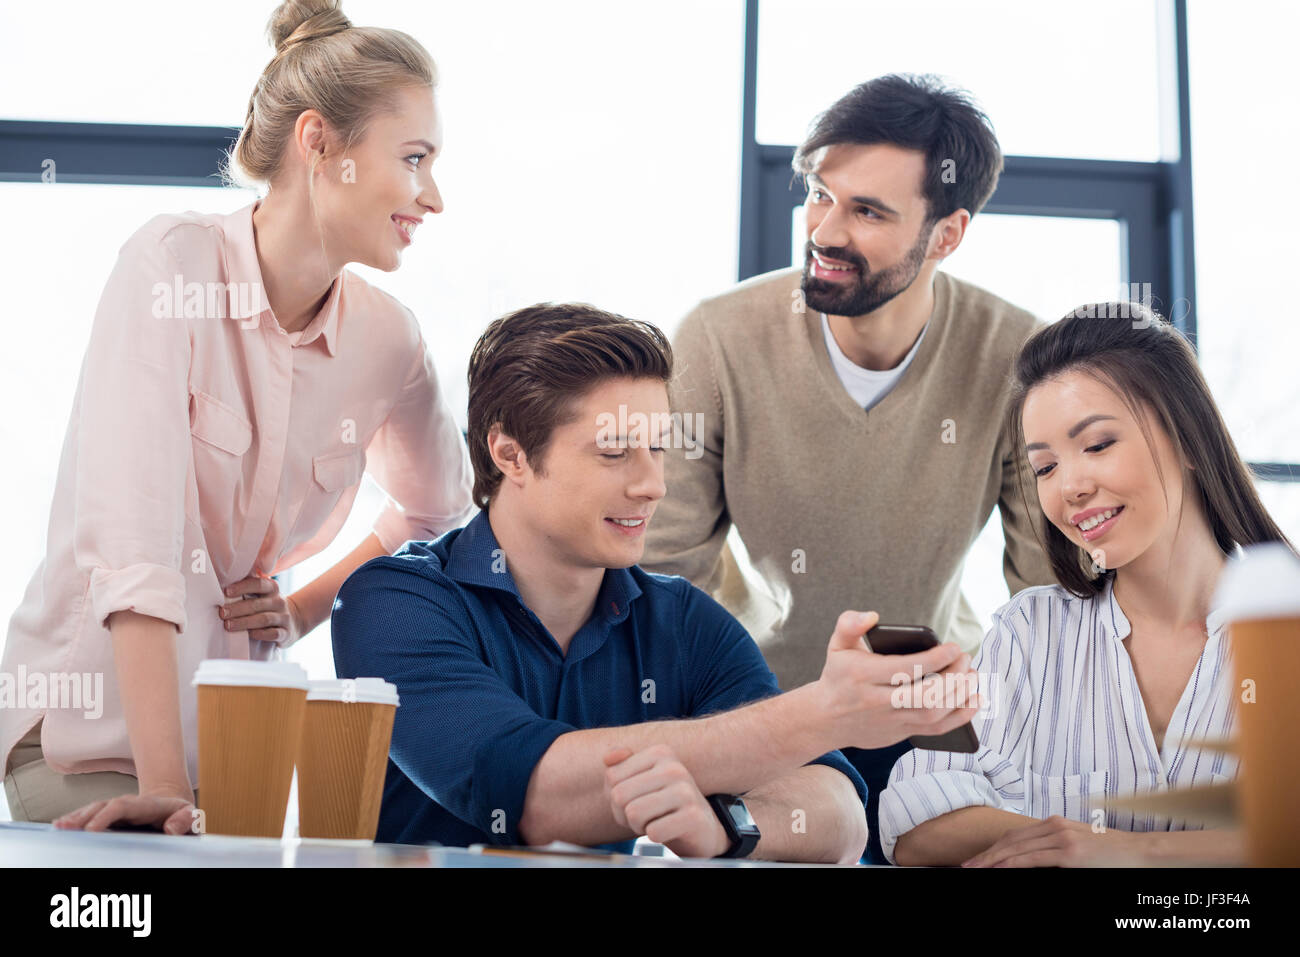 group of young business people using smartphone on small business meeting - Stock Image